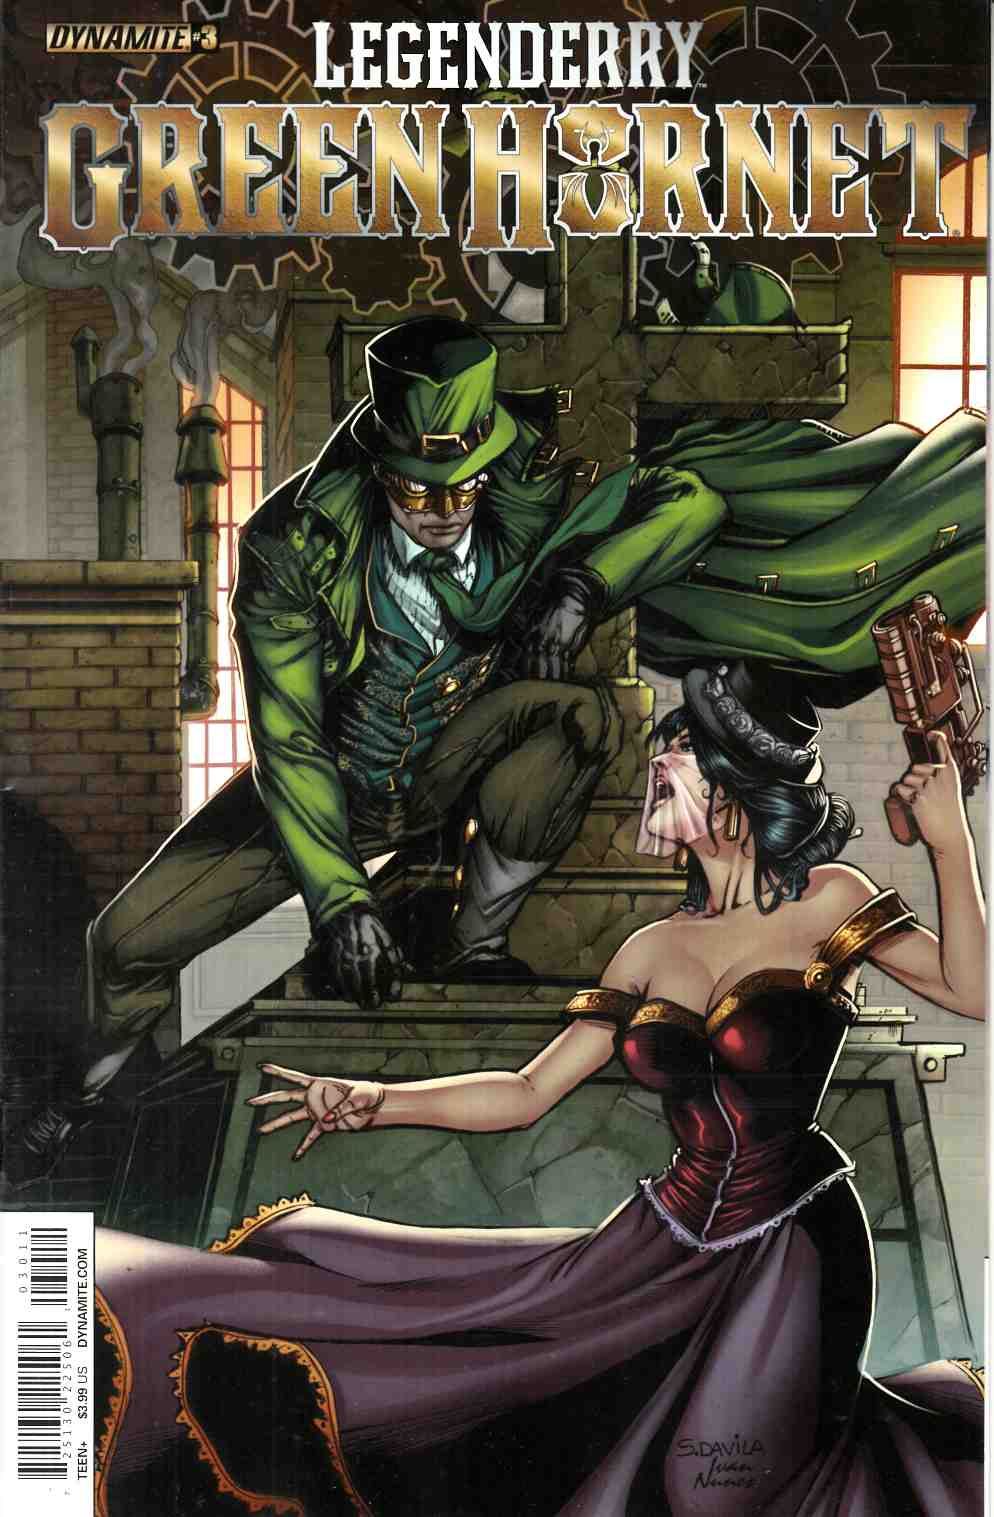 Legenderry Green Hornet #3 [Dynamite Comic]